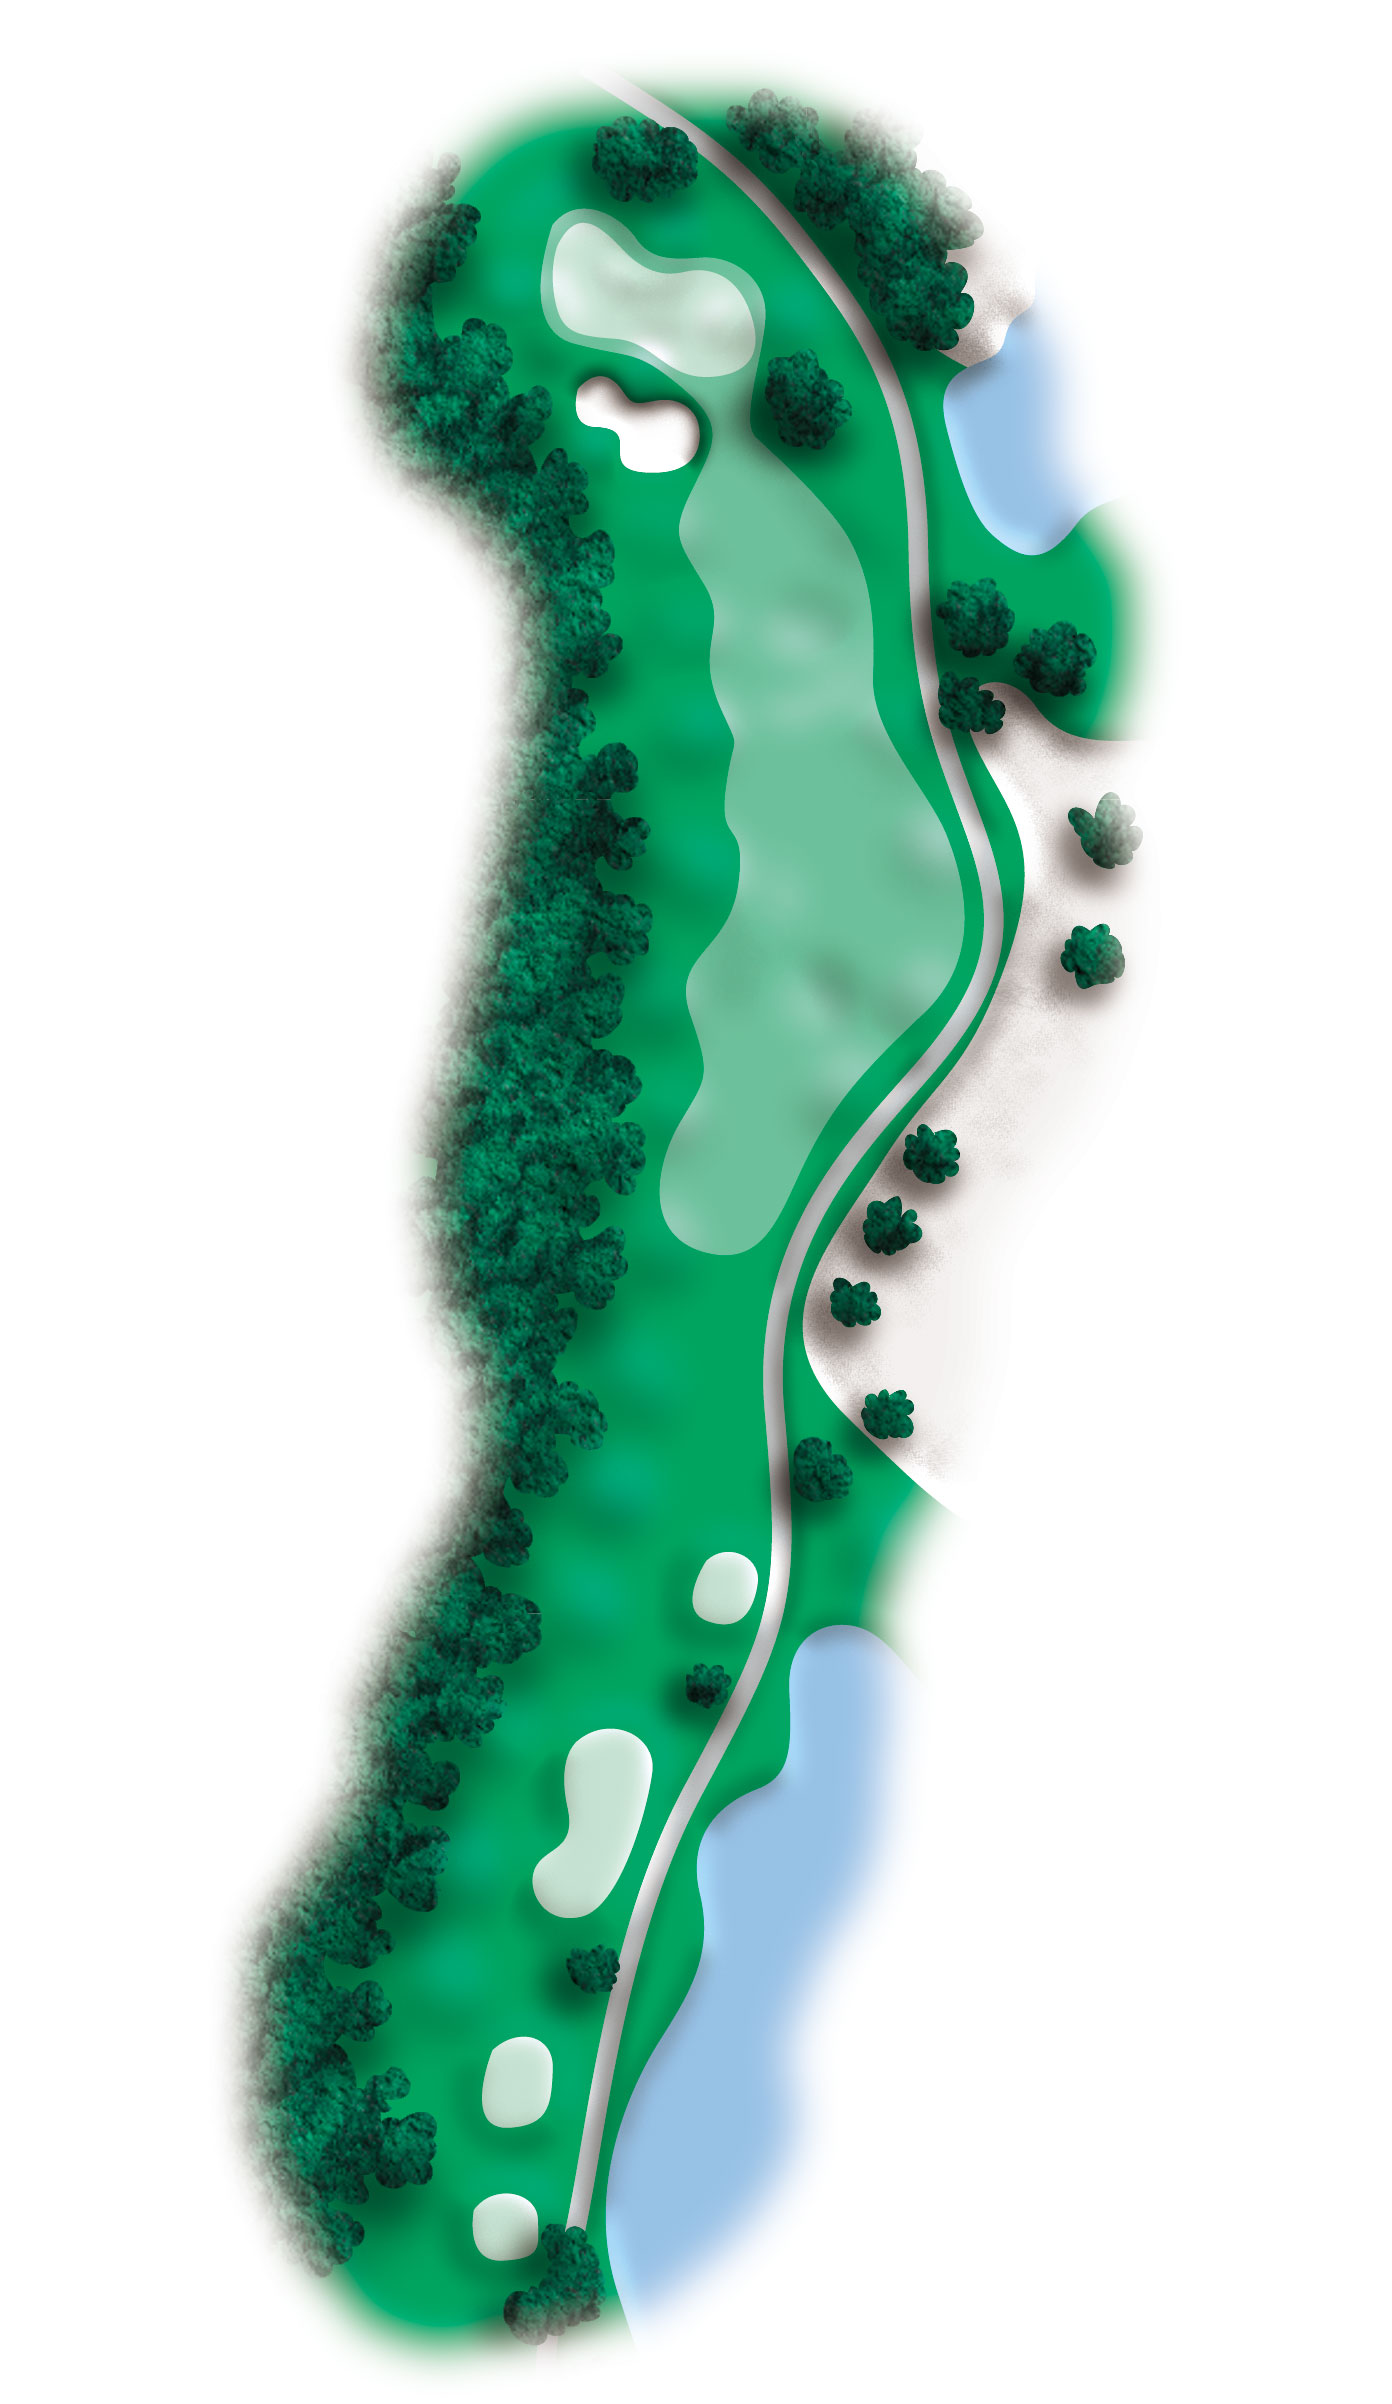 hole 4 diagram